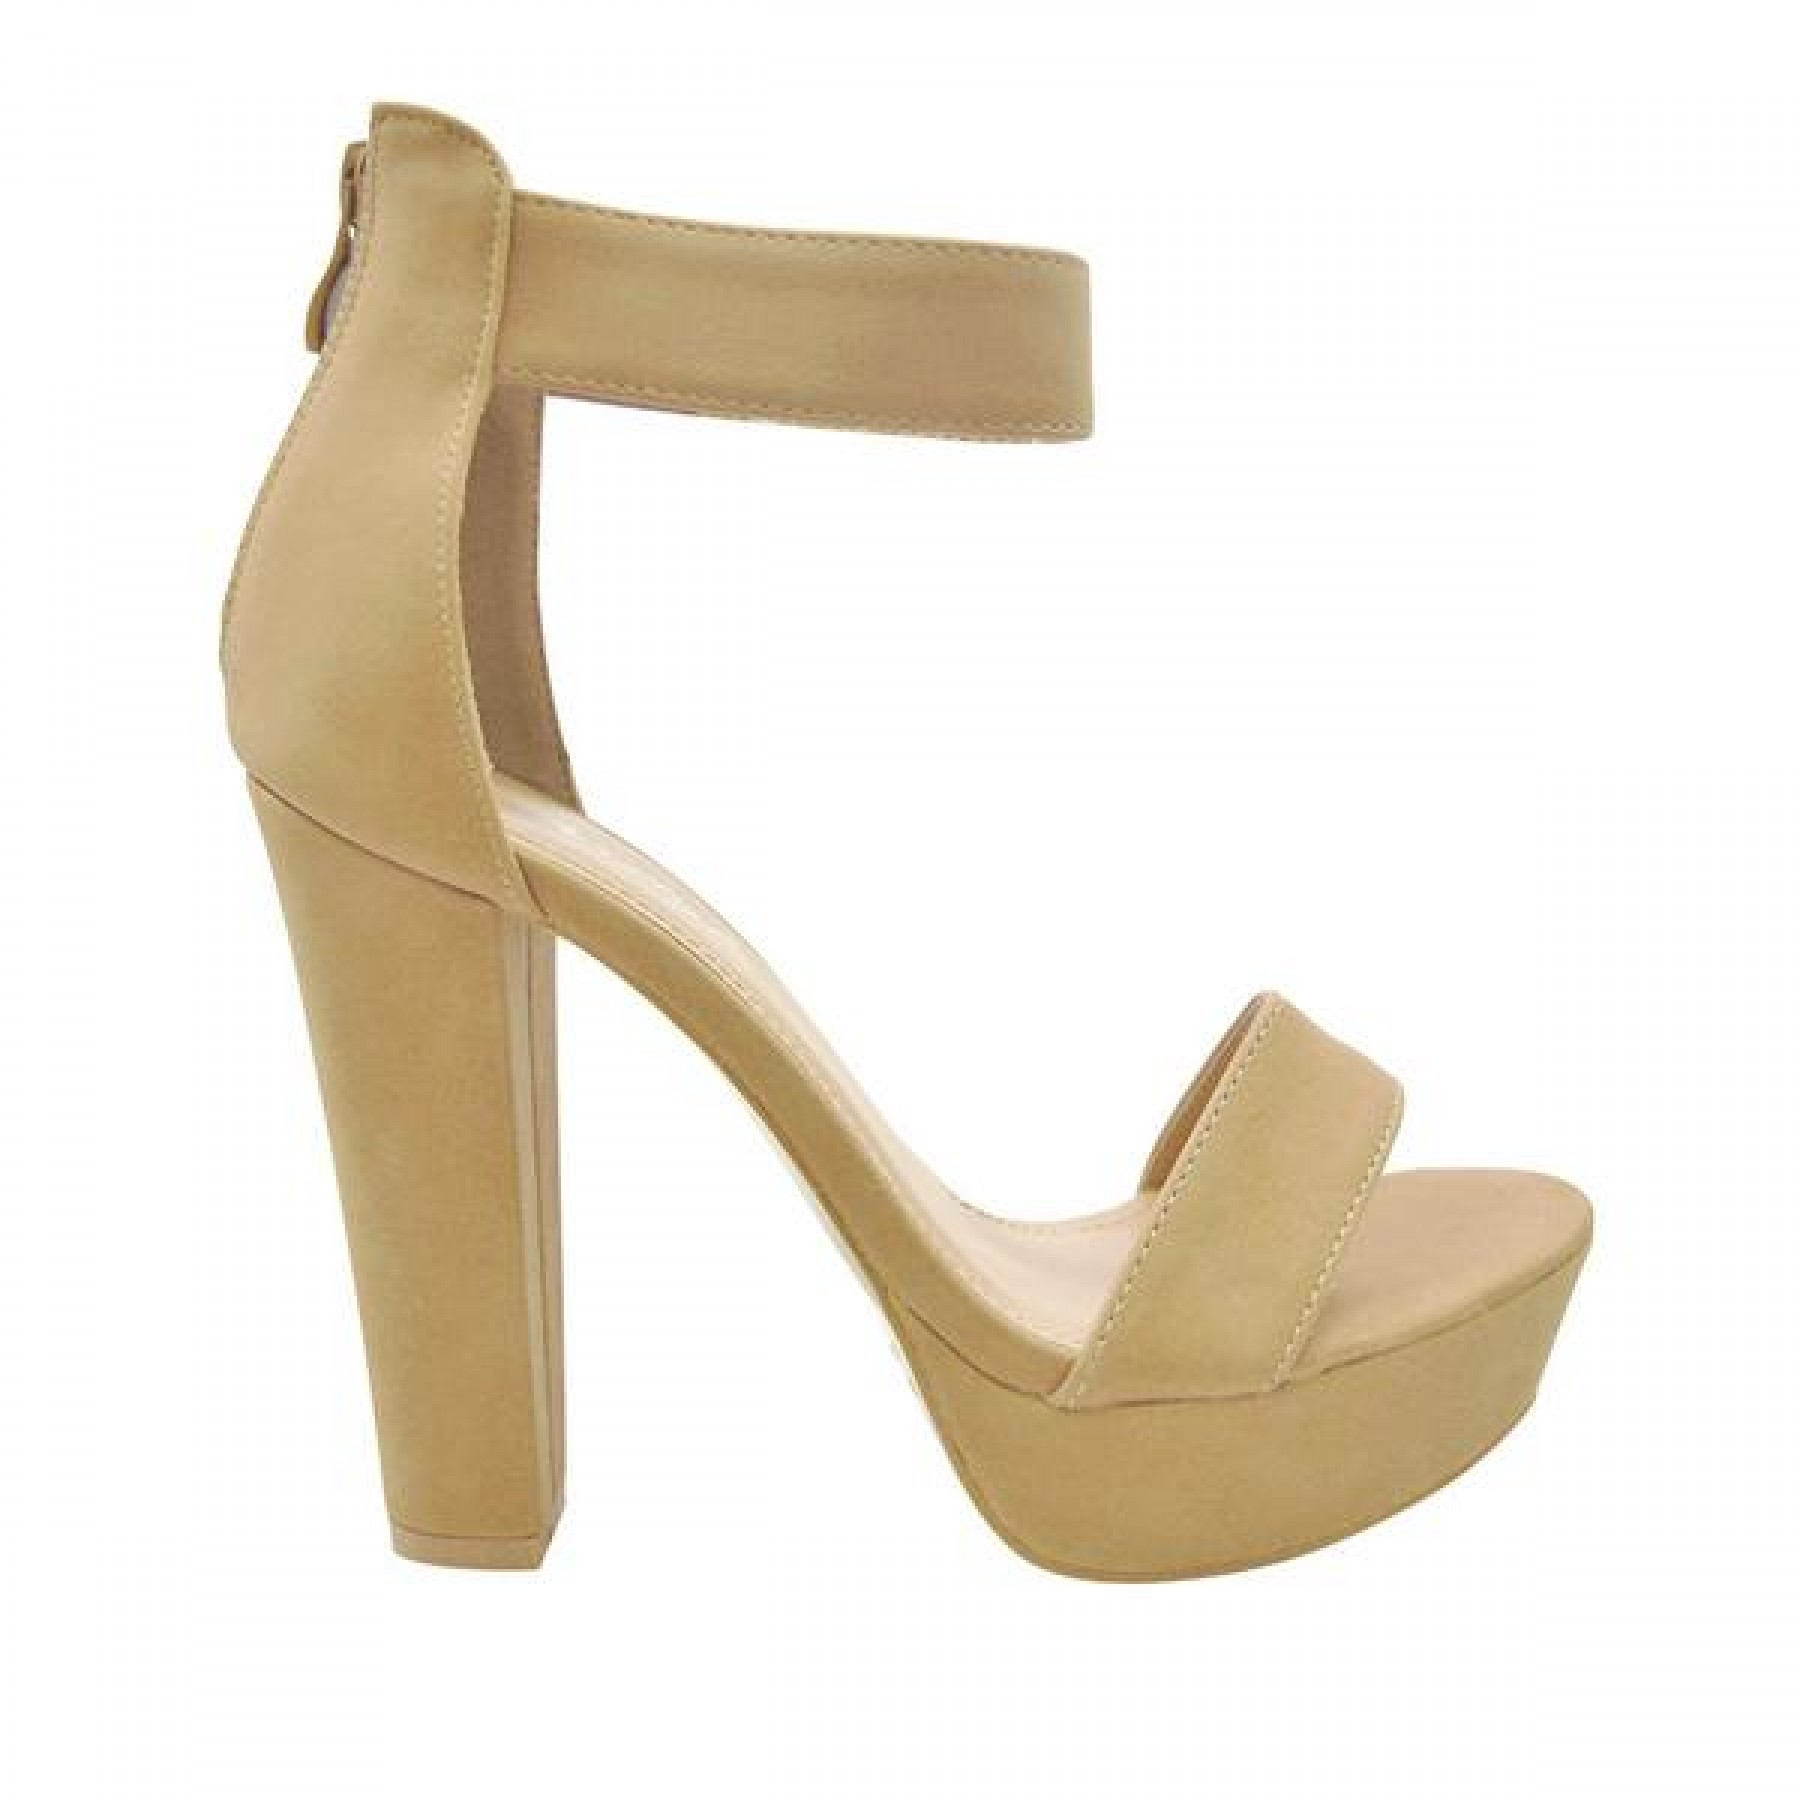 4-inch Heeled Sandal with Sueded Upper